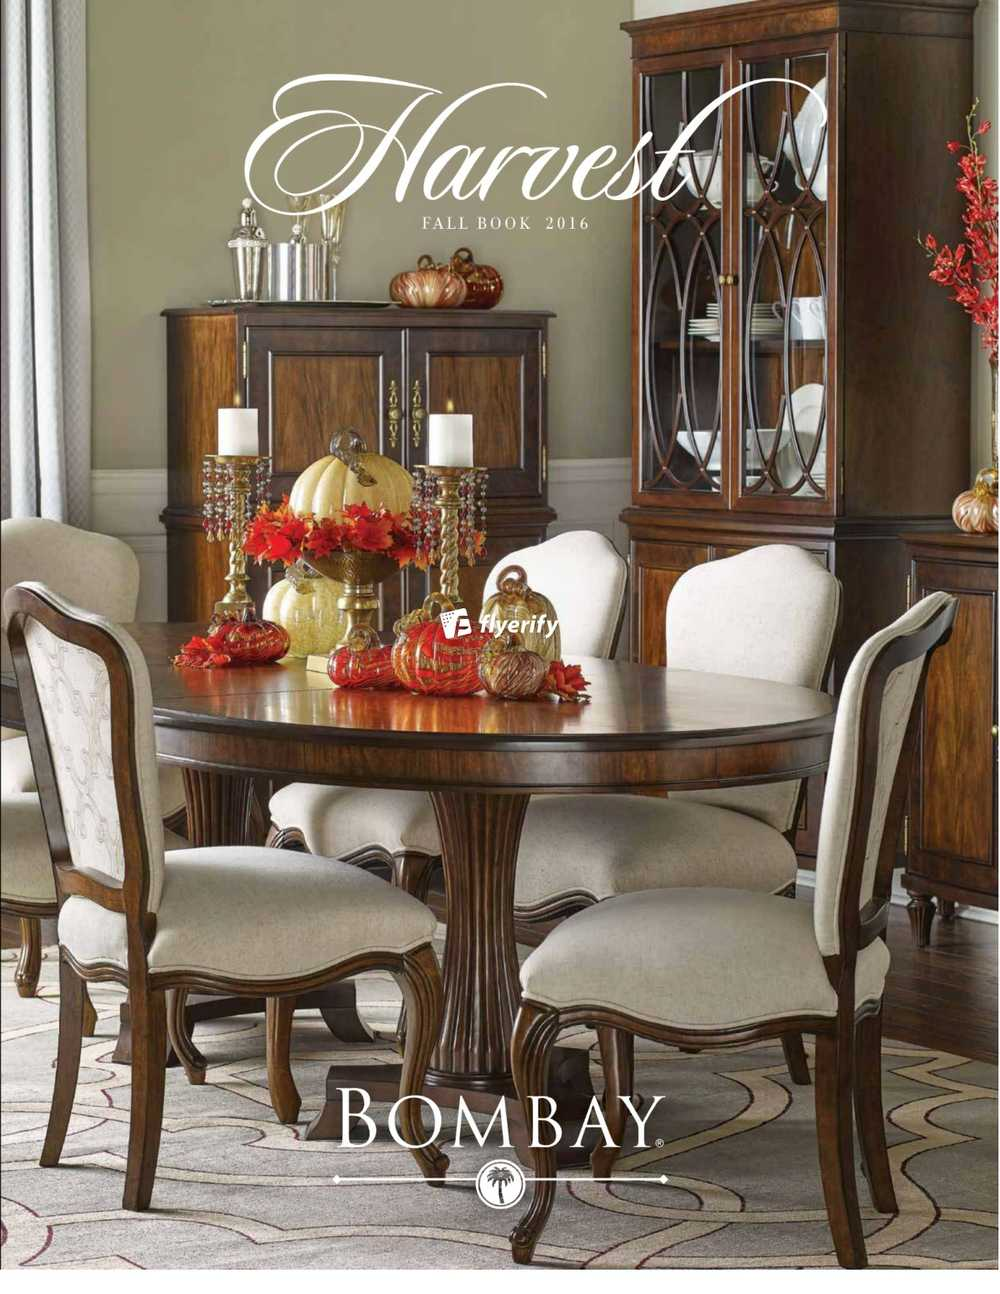 Bombay Fall Book September 6 To October 24